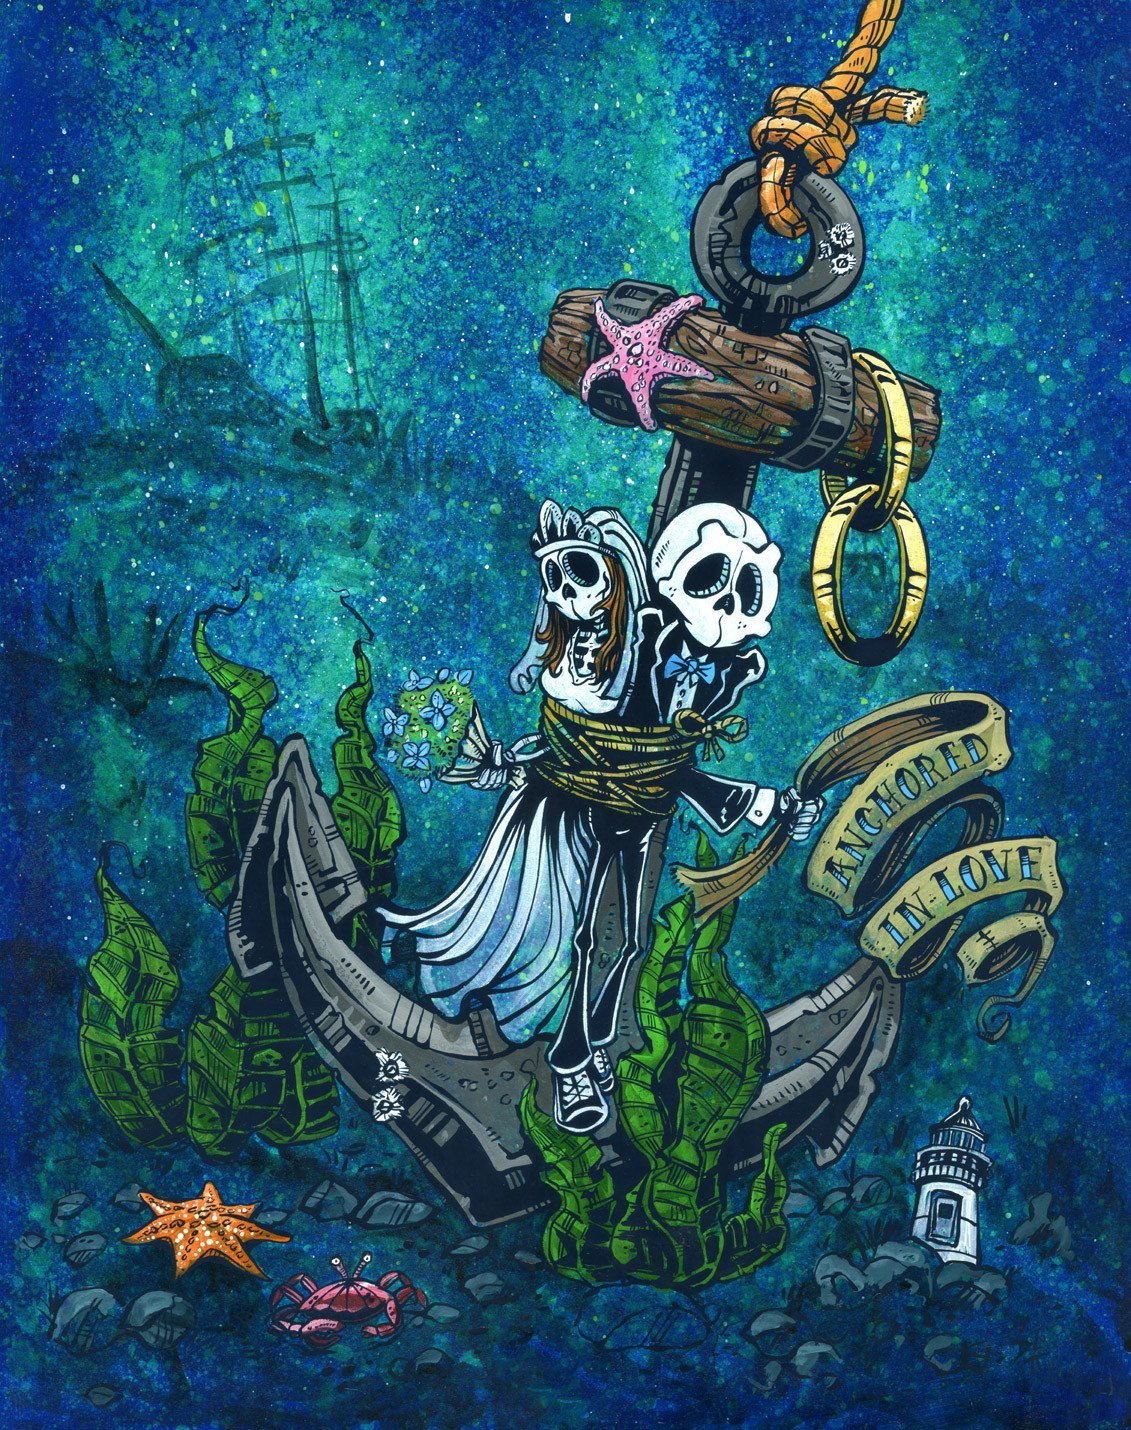 Anchored in Love by Day of the Dead Artist David Lozeau, Day of the Dead Art, Dia de los Muertos Art, Dia de los Muertos Artist